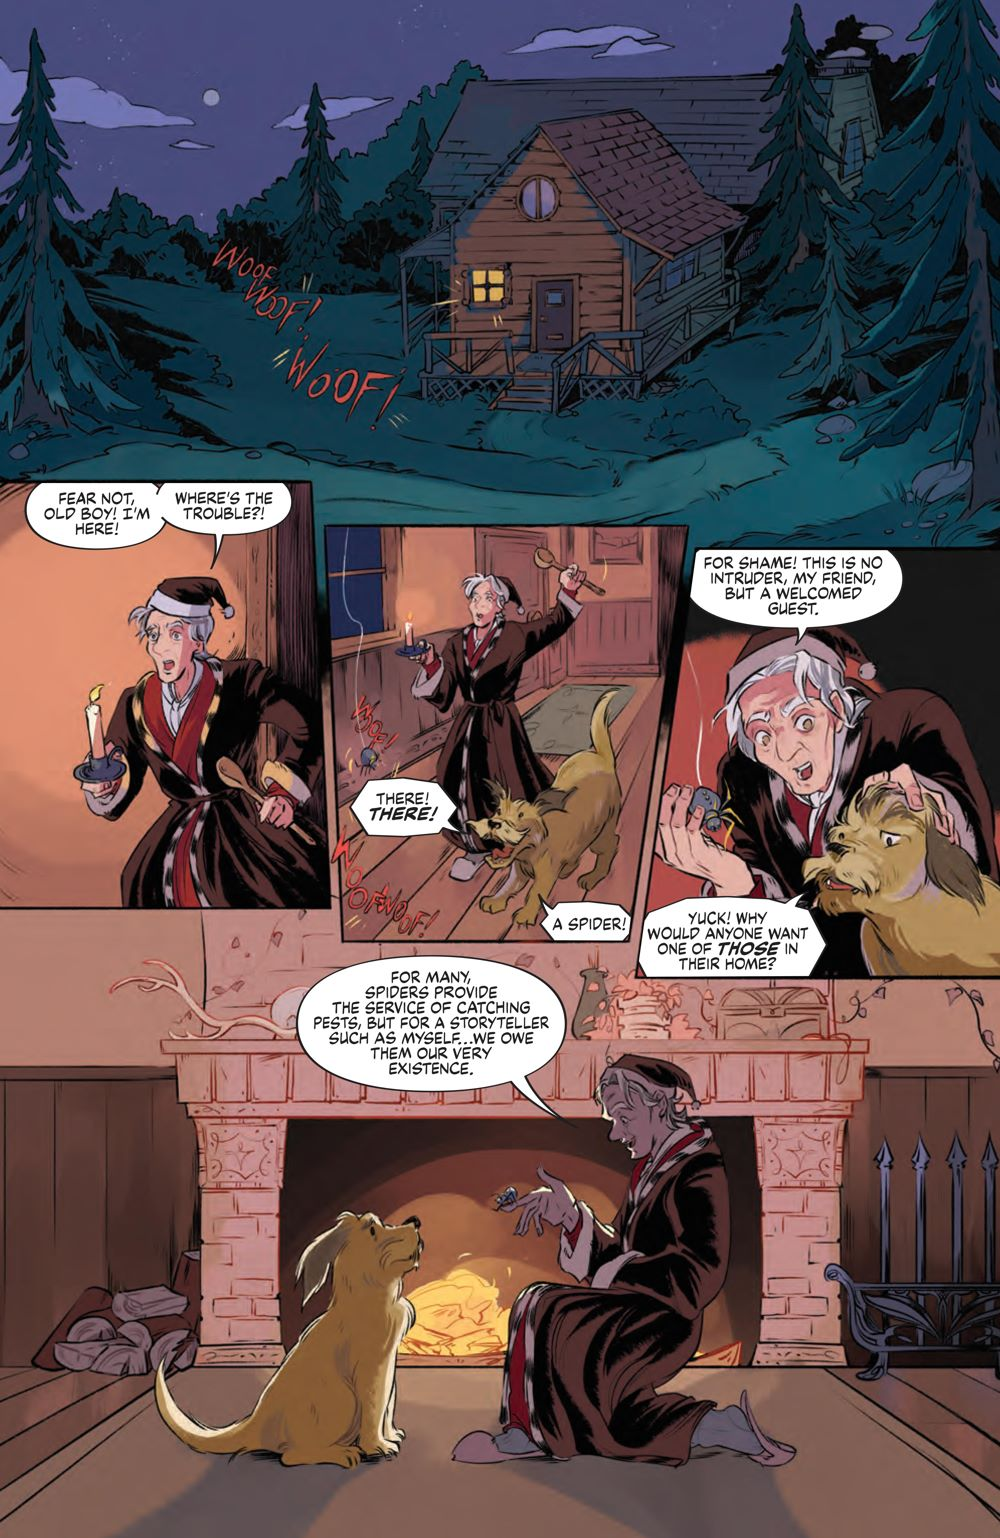 Storyteller_Tricksters_001_PRESS_3 ComicList Previews: JIM HENSON'S THE STORYTELLER TRICKSTERS #1 (OF 4)